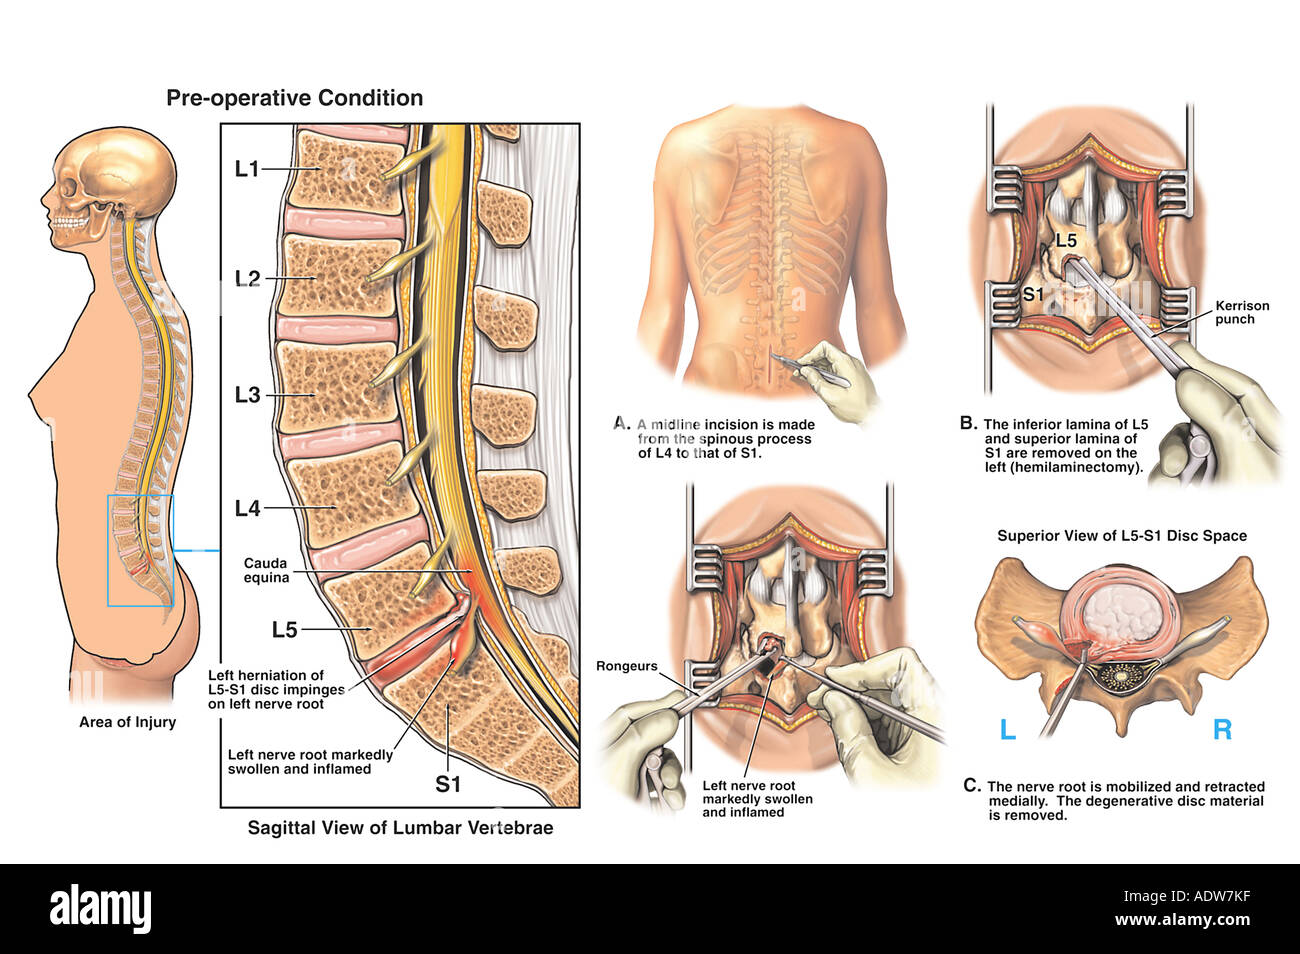 L5-S1 Disc Herniation with Hemilaminectomy and Discectomy Procedure ...